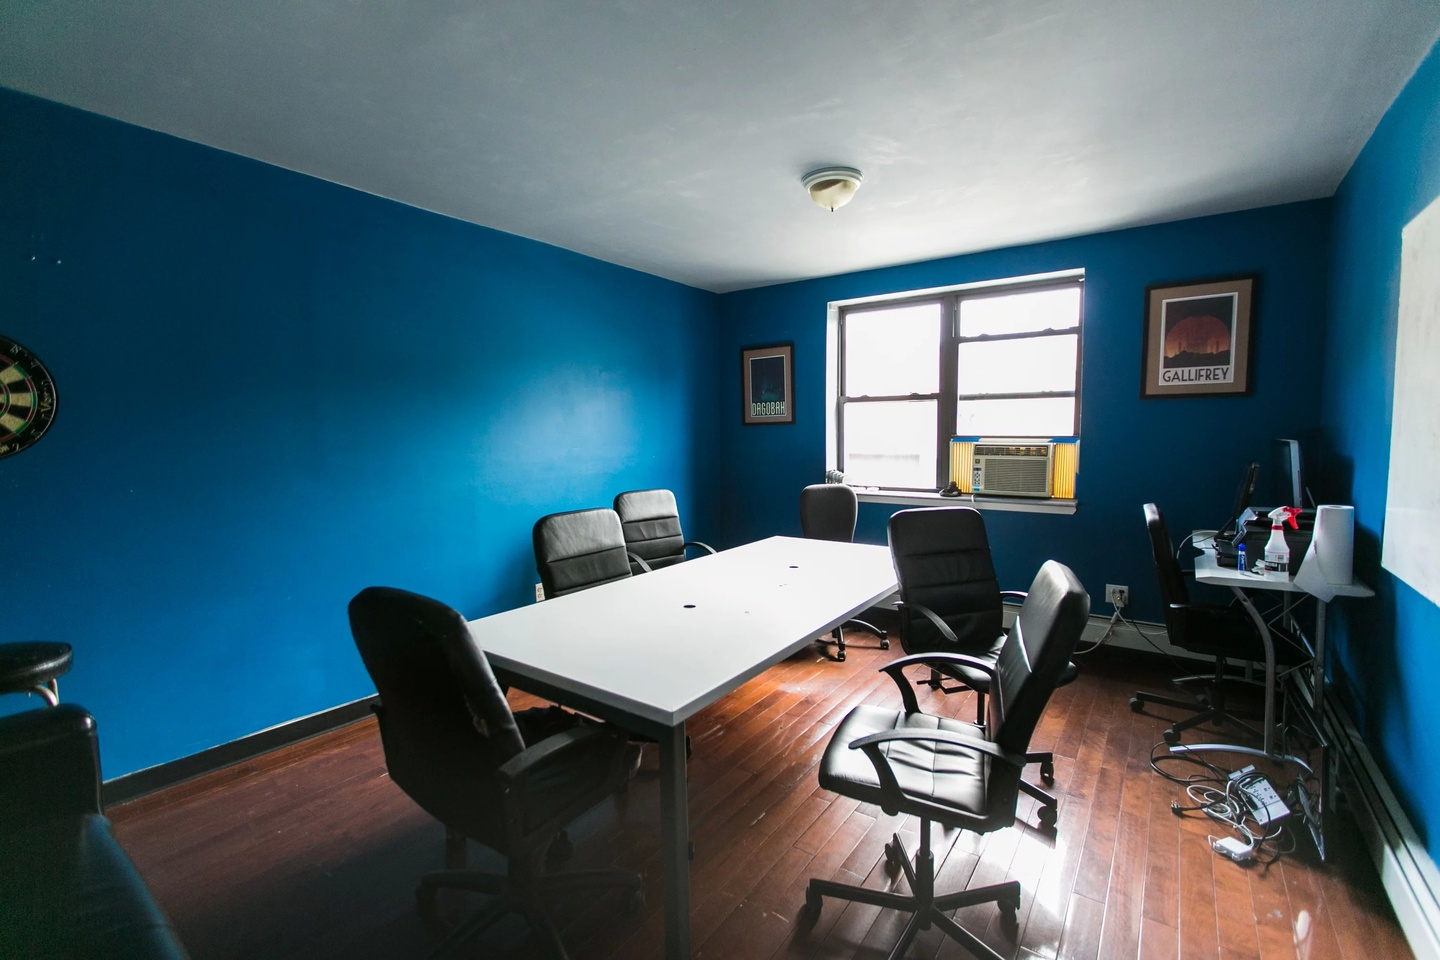 NYC conference rooms Salle de réunion Workspace Williamsburg - Conference Room image 2